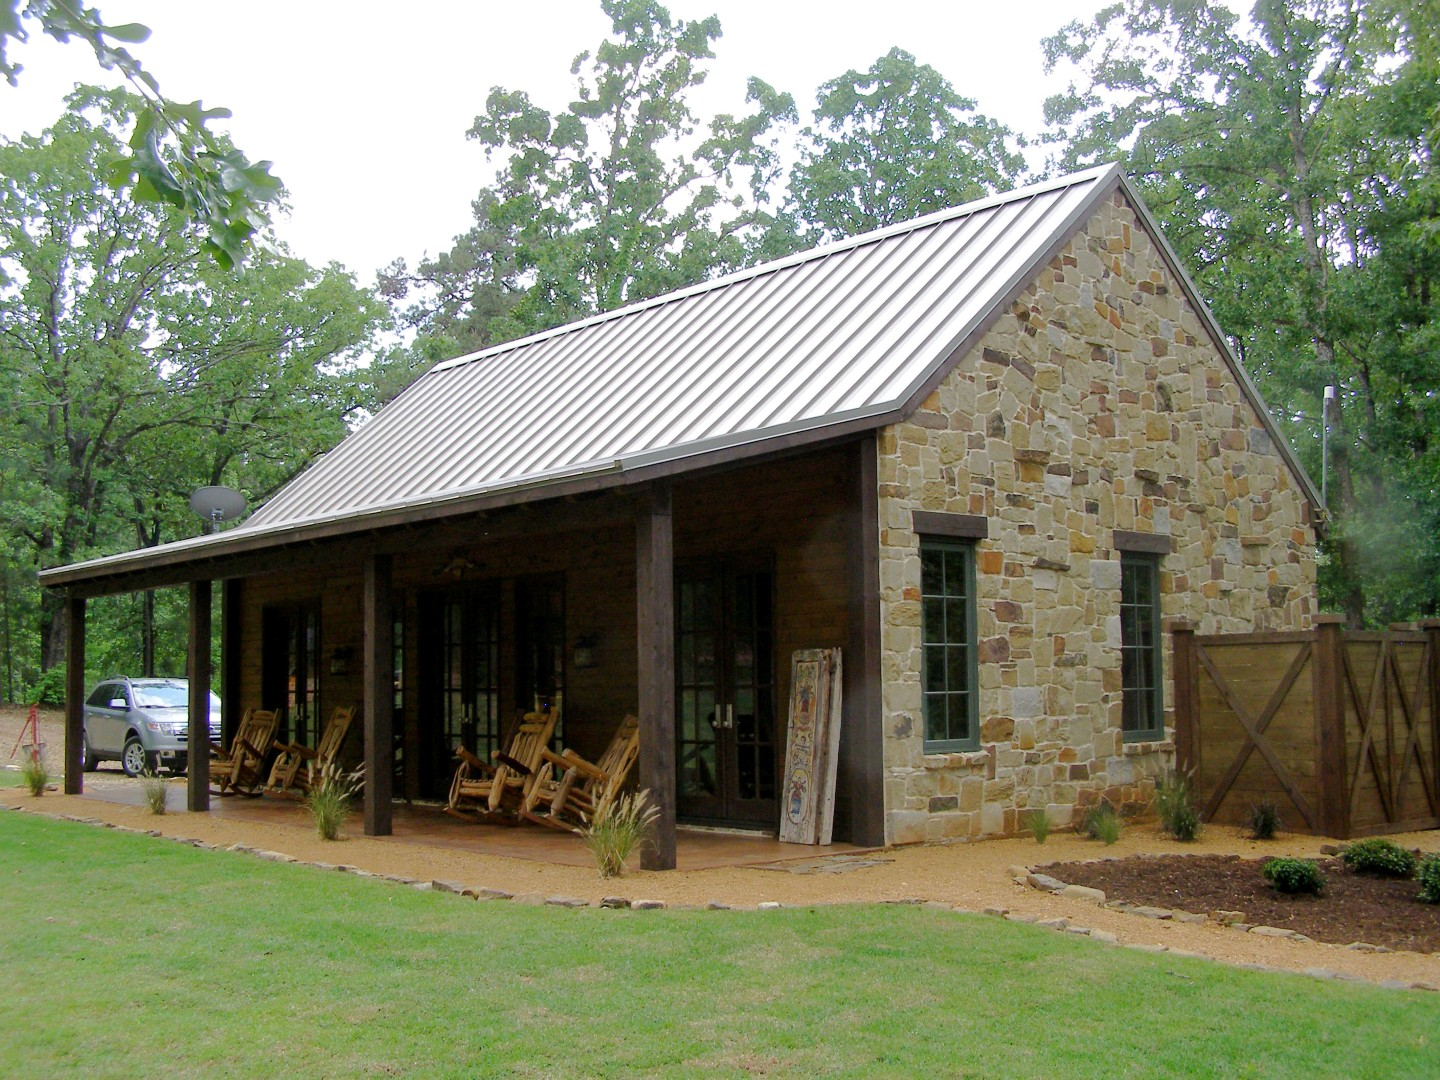 Storage Shed Plans With Porch – Build a Garden Storage ...